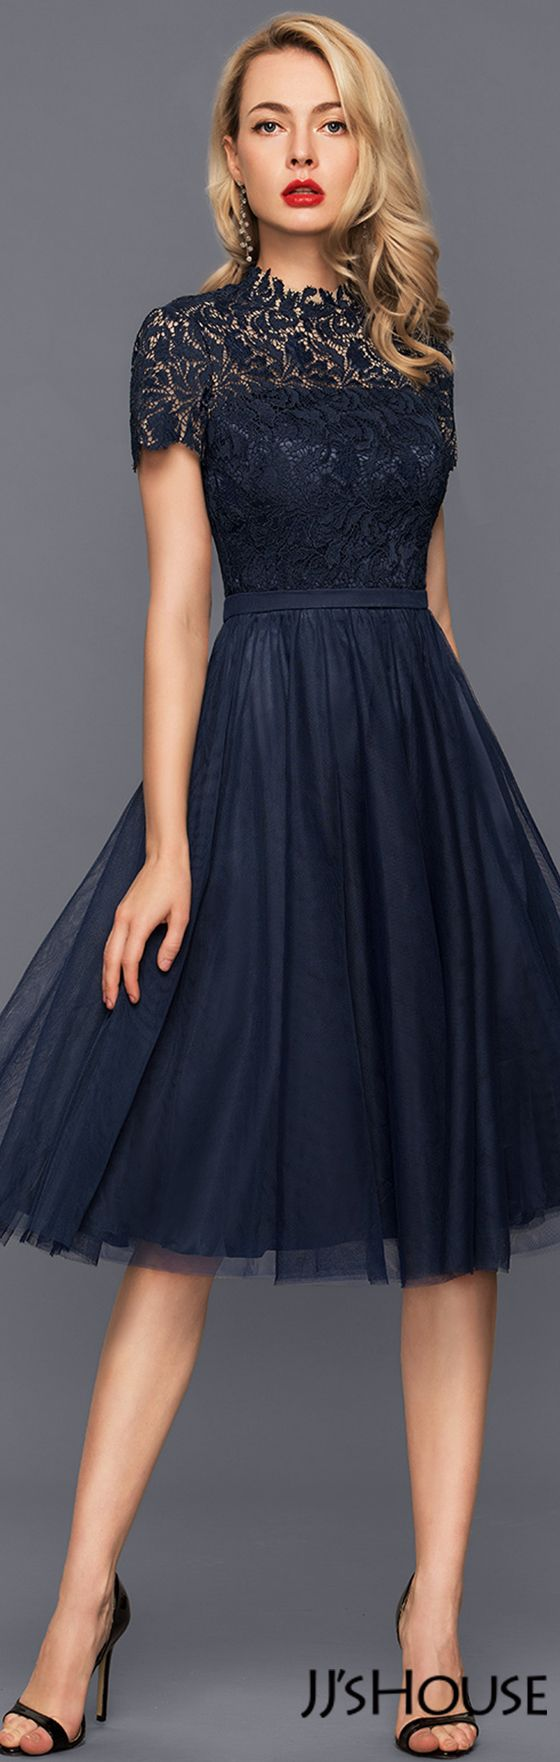 A-Line/Princess High Neck Knee-Length Tulle Cocktail Dress#JJsHouse #Cocktail dresses